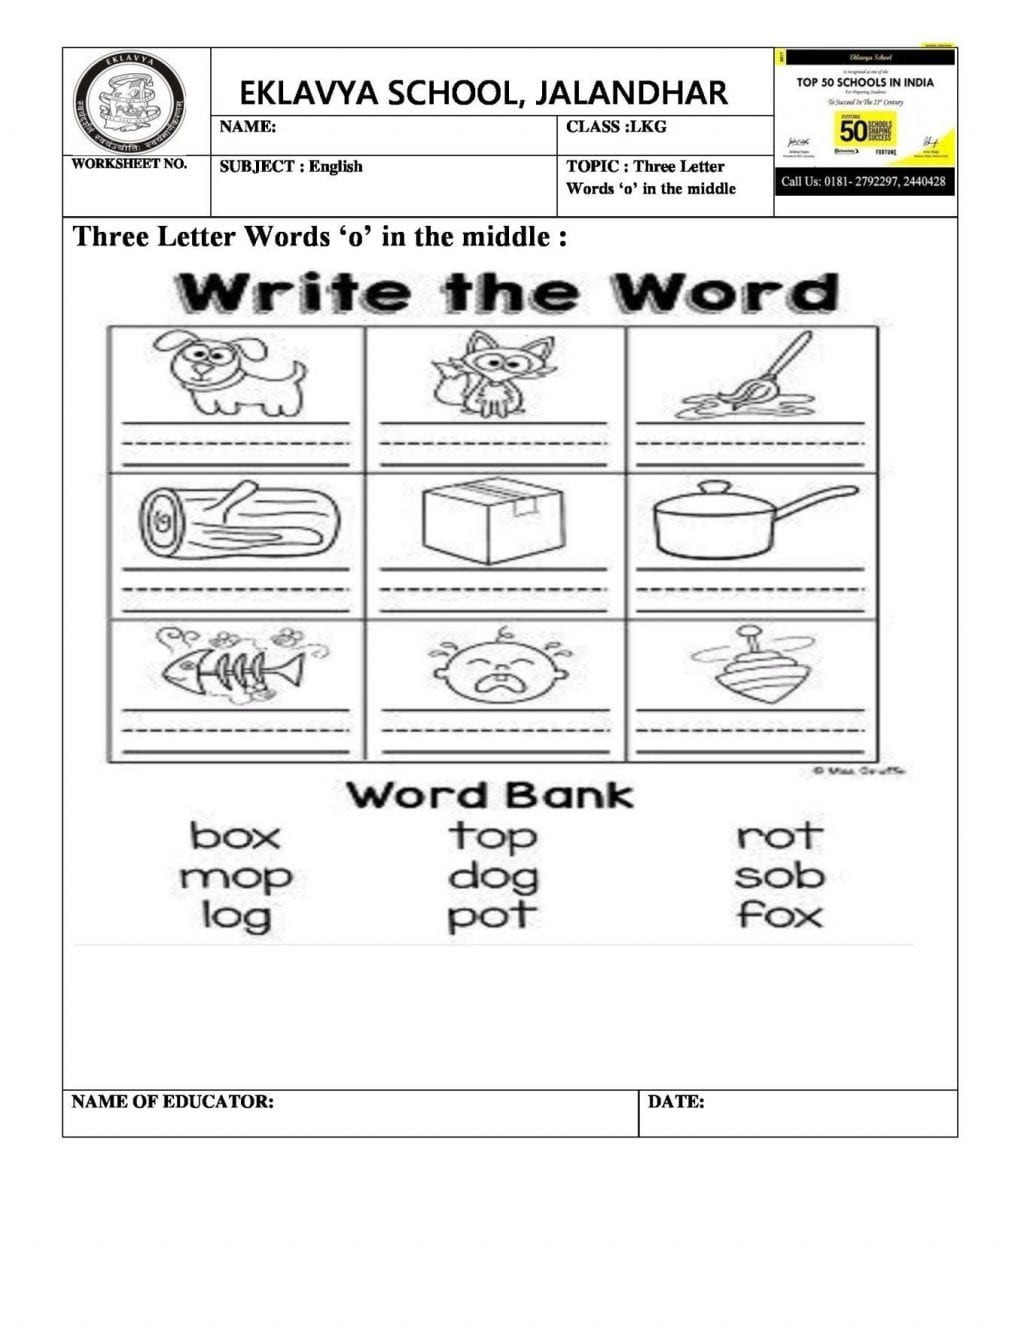 Worksheet Ideas Career Worksheets For Middle School